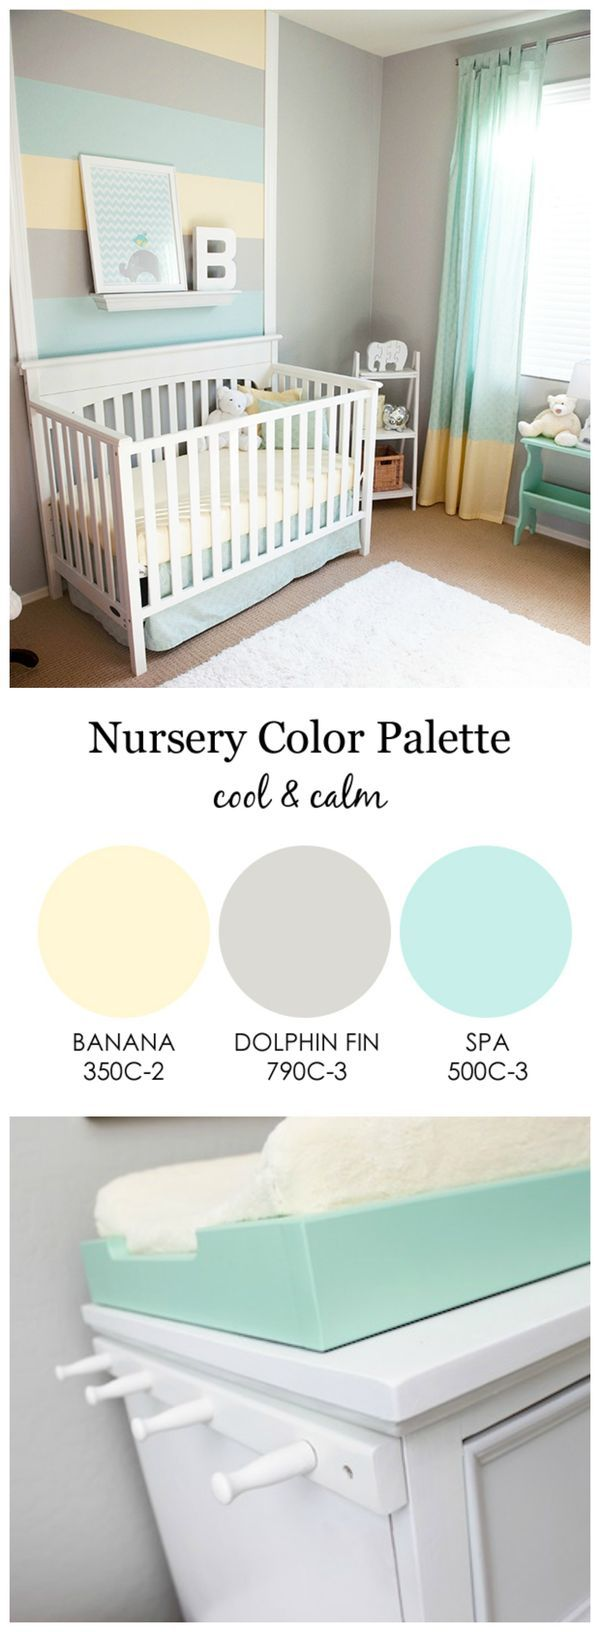 Baby boy room decor pinterest - Cool And Calm Gender Neutral Nursery Love The Mint Green Gray And Light